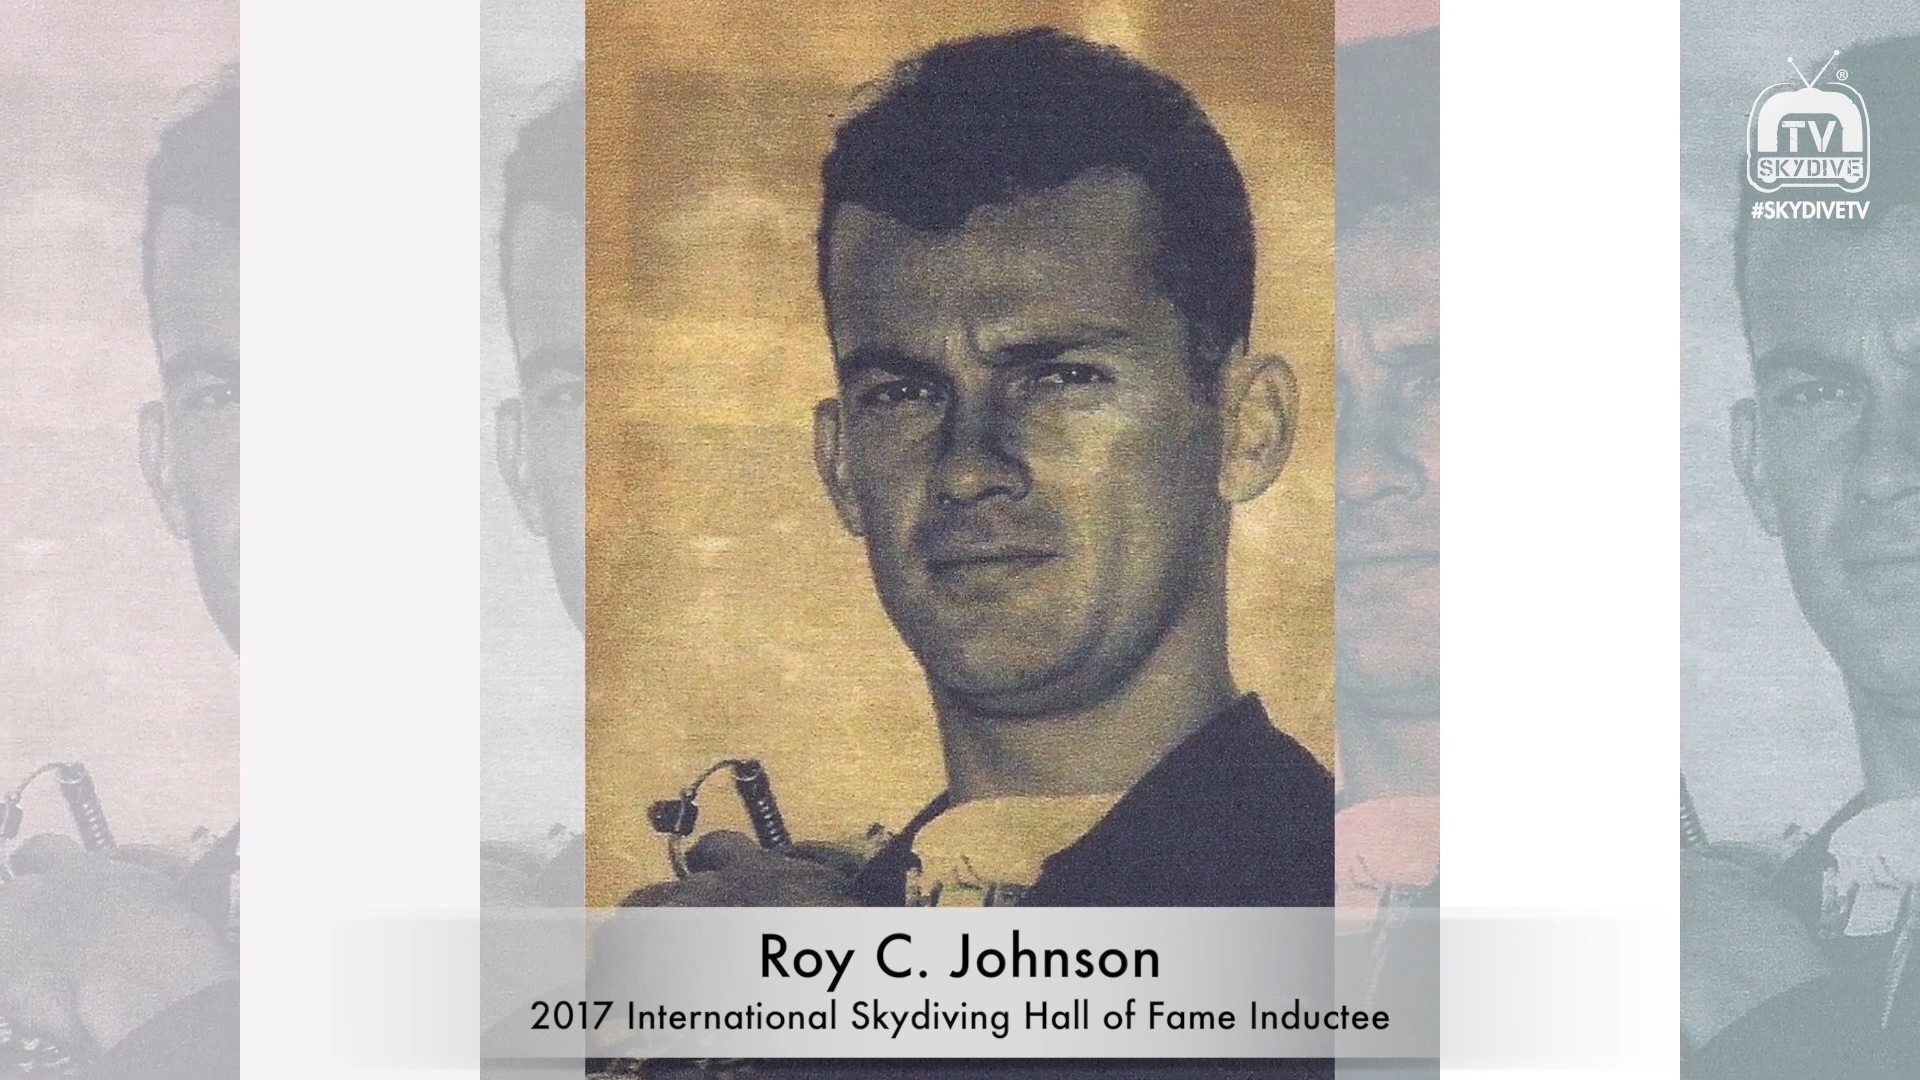 Roy C. Johnson